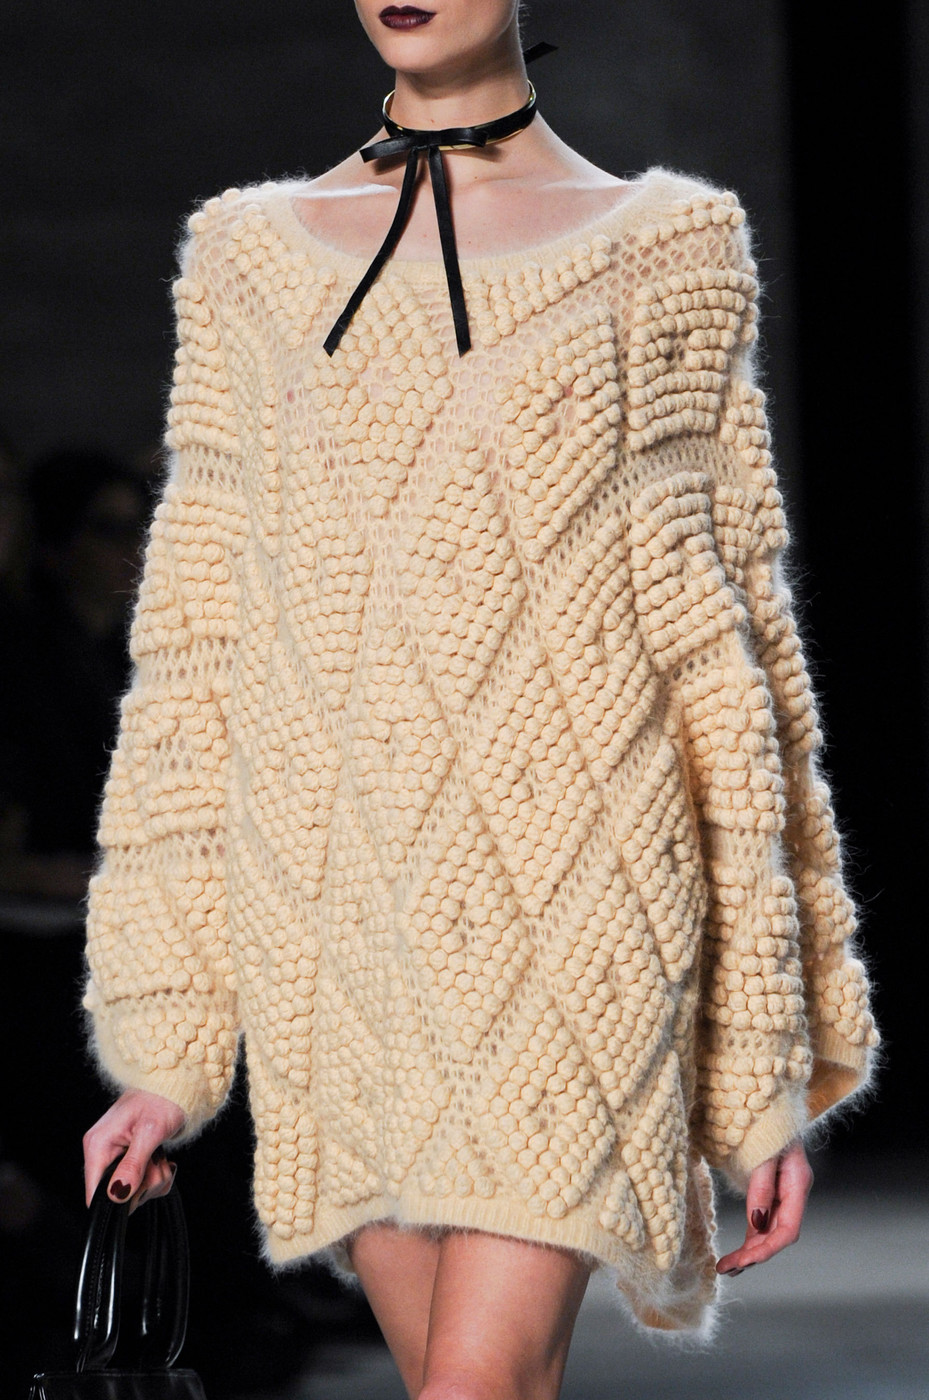 spunkh :      spunkh :      sadboyblues :      oncethingslookup :     Zimmermann Fall 2014 RTW     X       Models and a pretty vibe       x